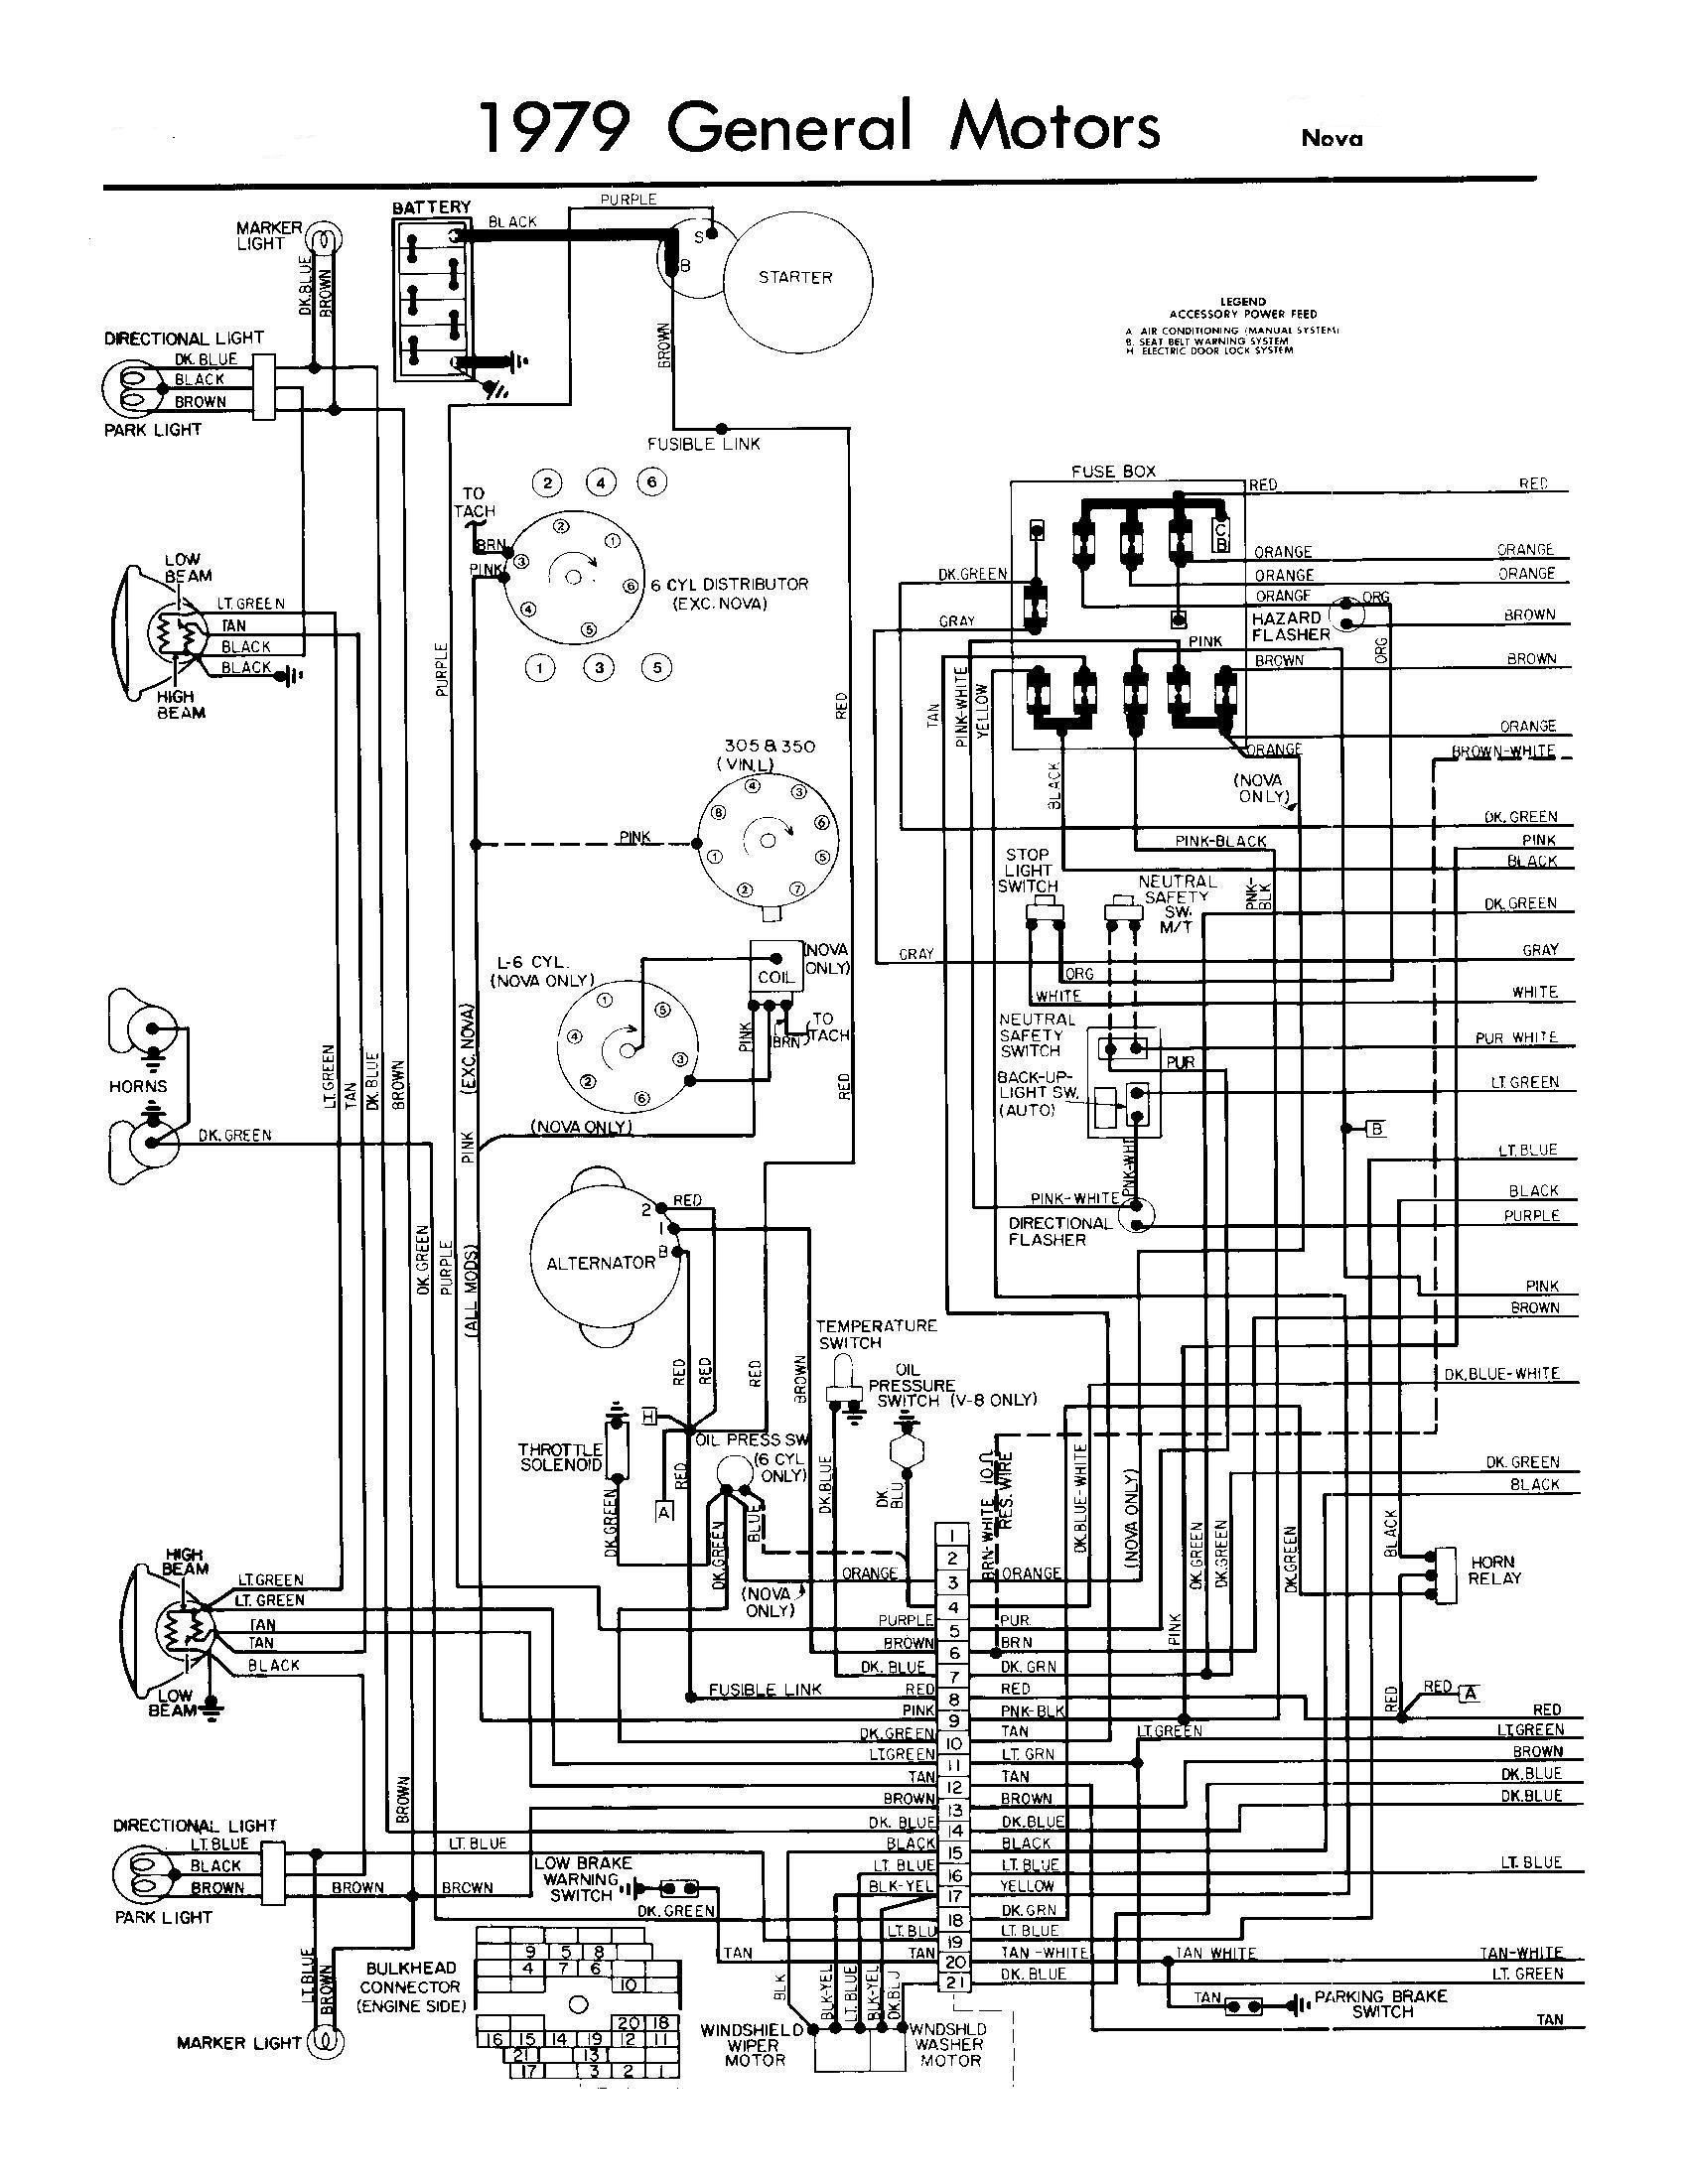 General Motors Trailer Wiring Color Code - DATA Wiring Diagrams •